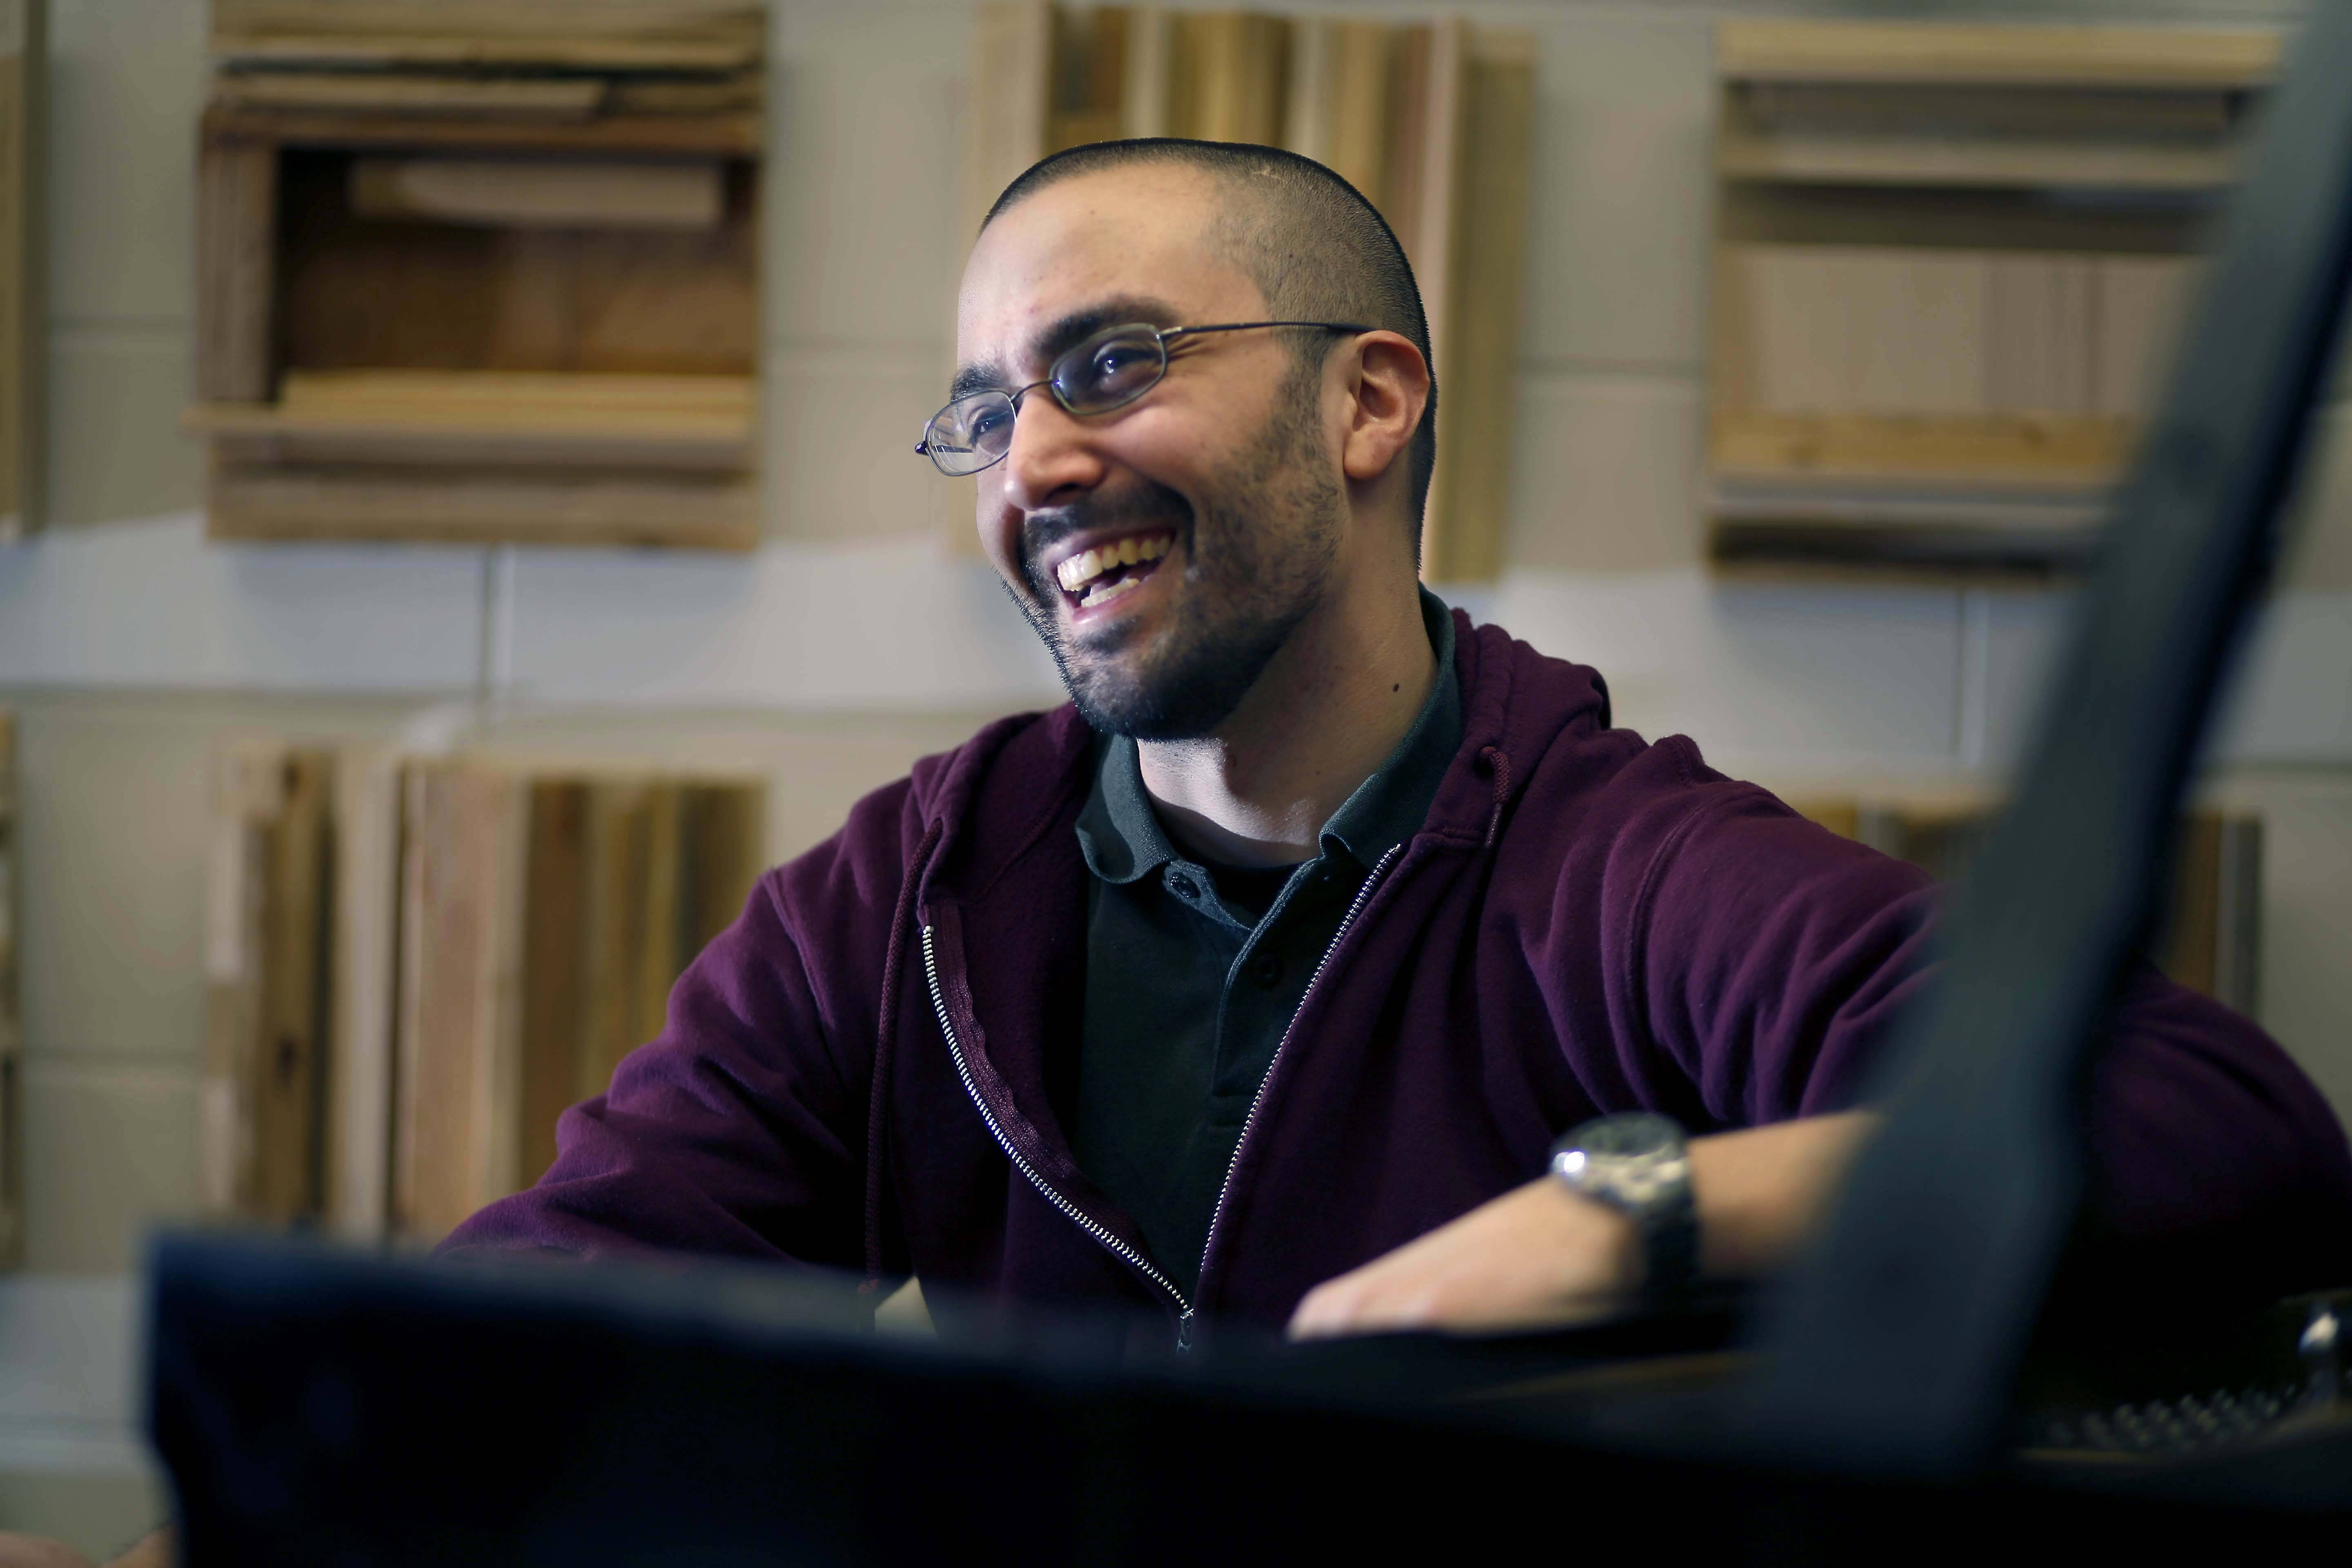 Smiling at the thought of having something in common with Adele and Chance the Rapper, musician and piano-tuner Matt Ponio, who grew up in Island Lake, won a Grammy for his work as an assistant recording engineer on an album of chamber music.